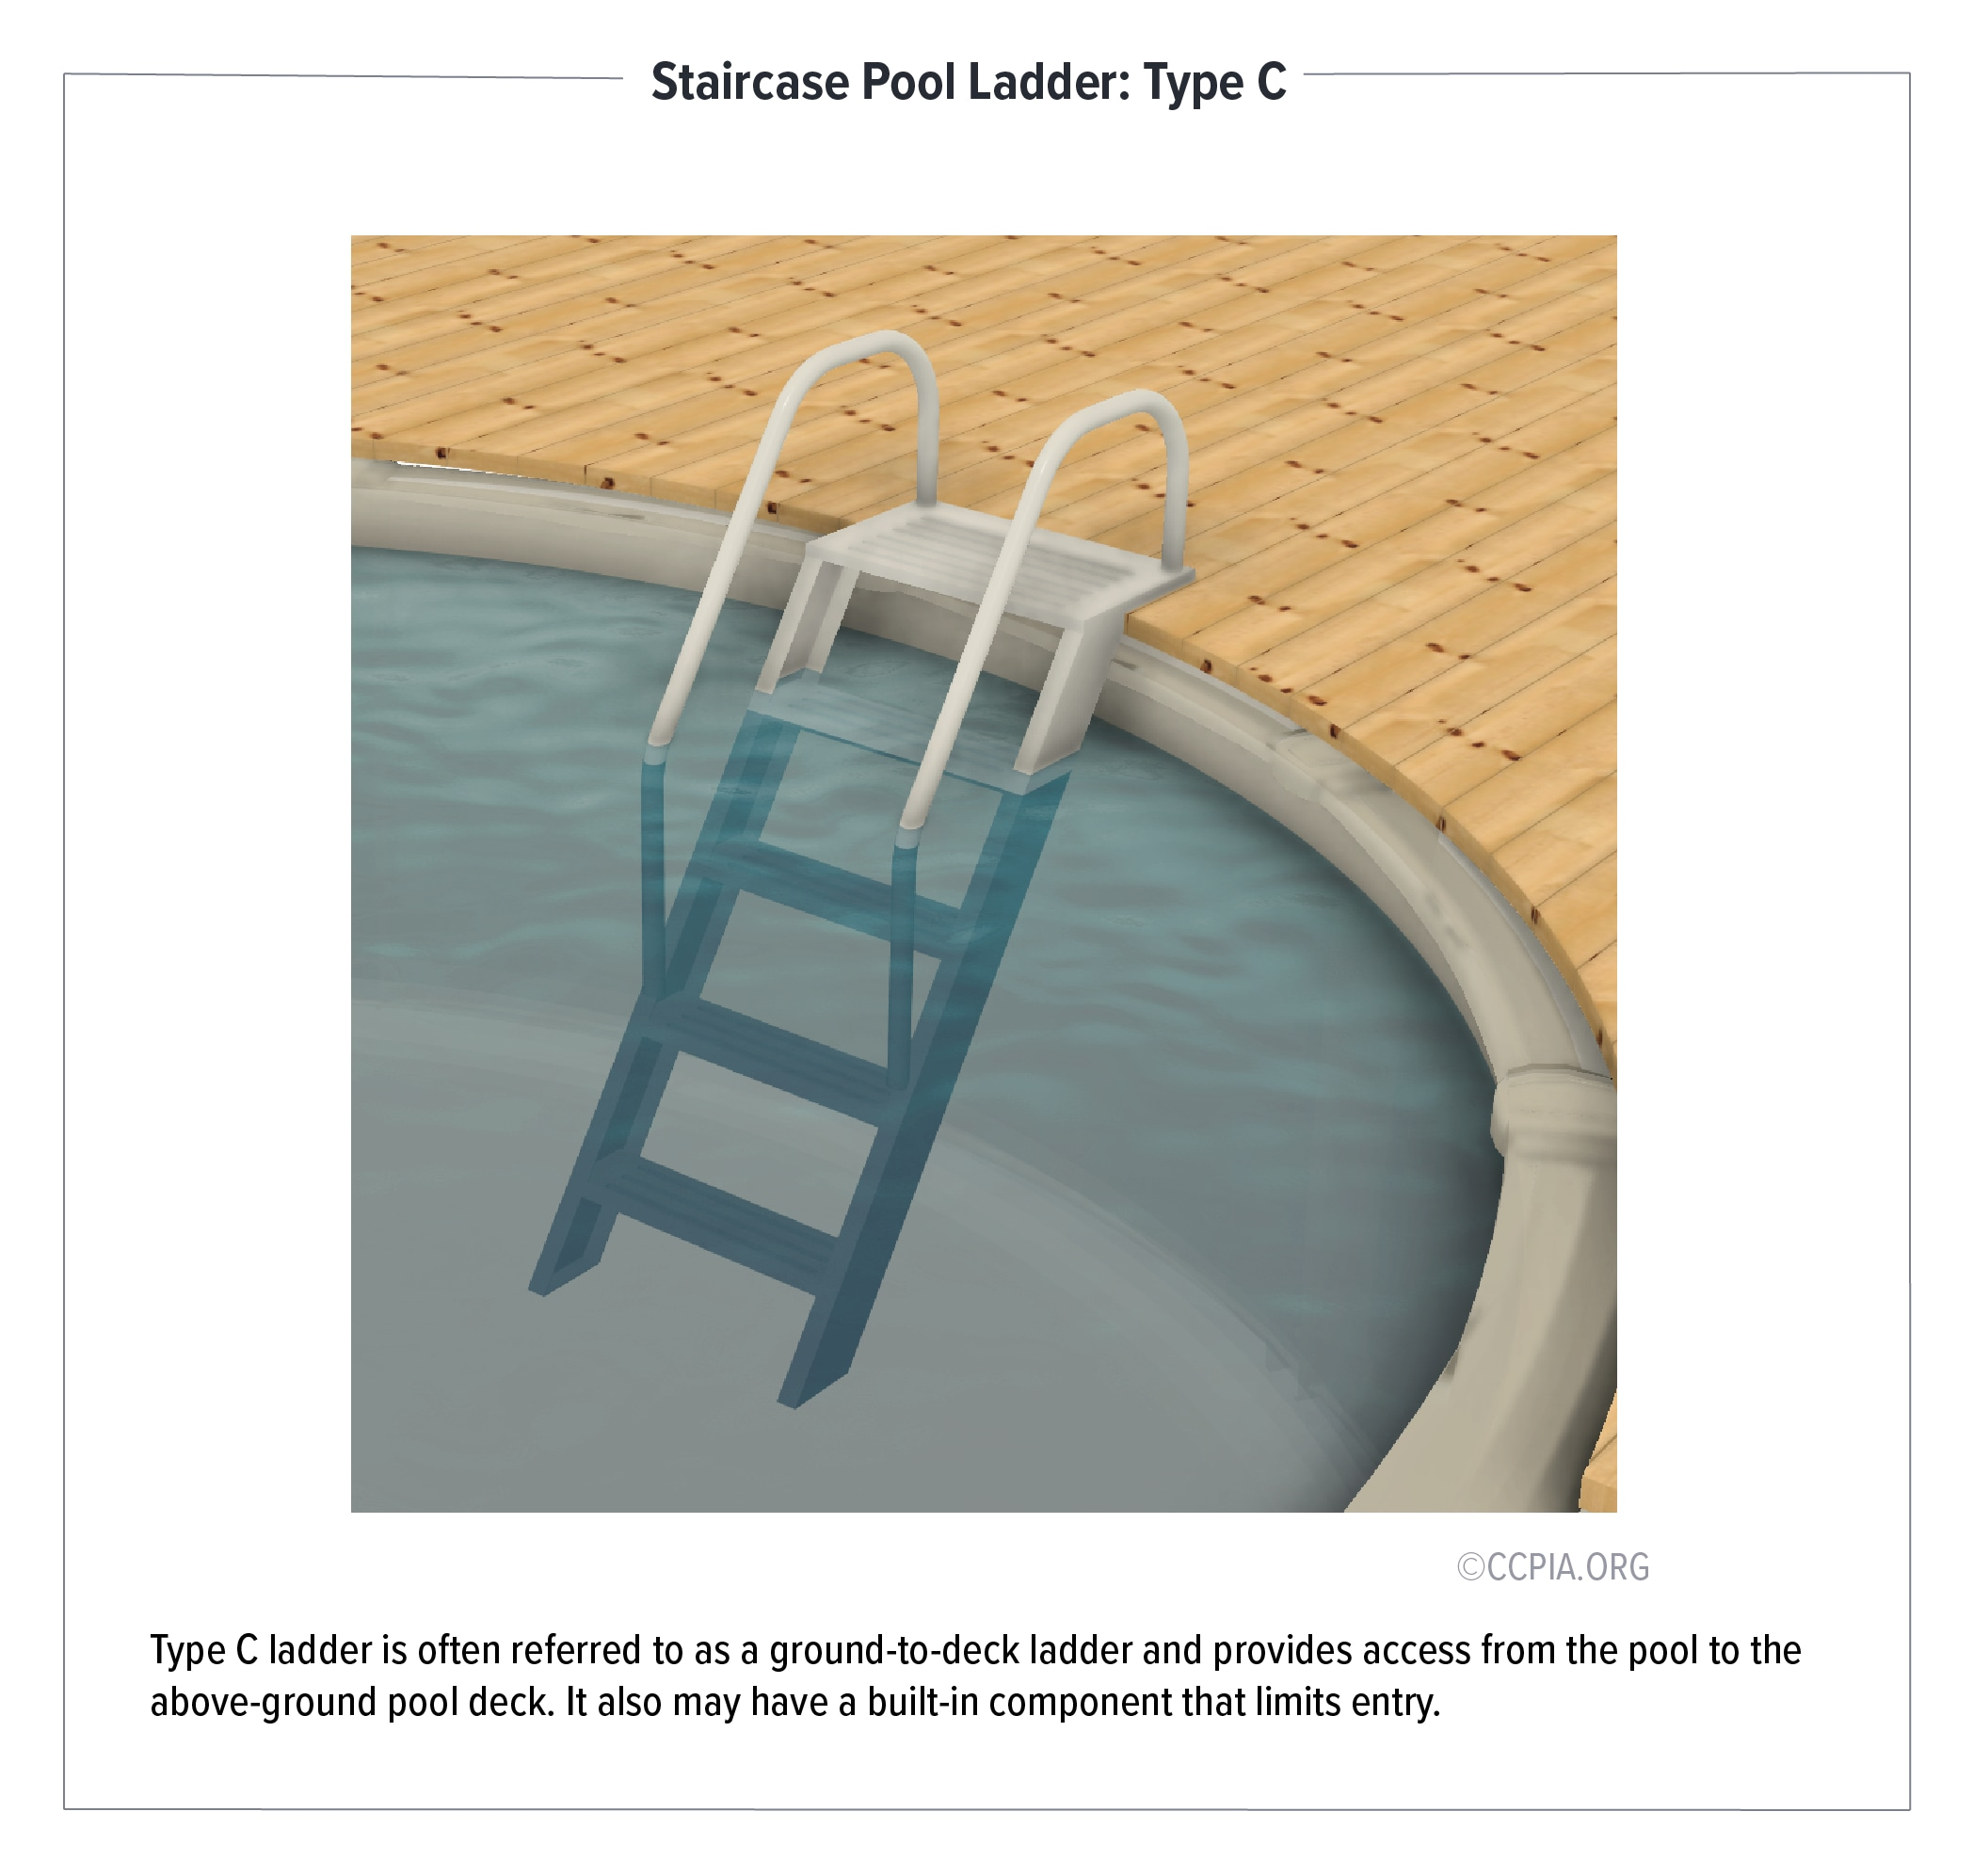 Staircase Pool Ladder: Type C ladder is often referred to as a ground-to-deck ladder and provides access from the pool to the above-ground pool deck. It also may have a built-in component that limits entry.